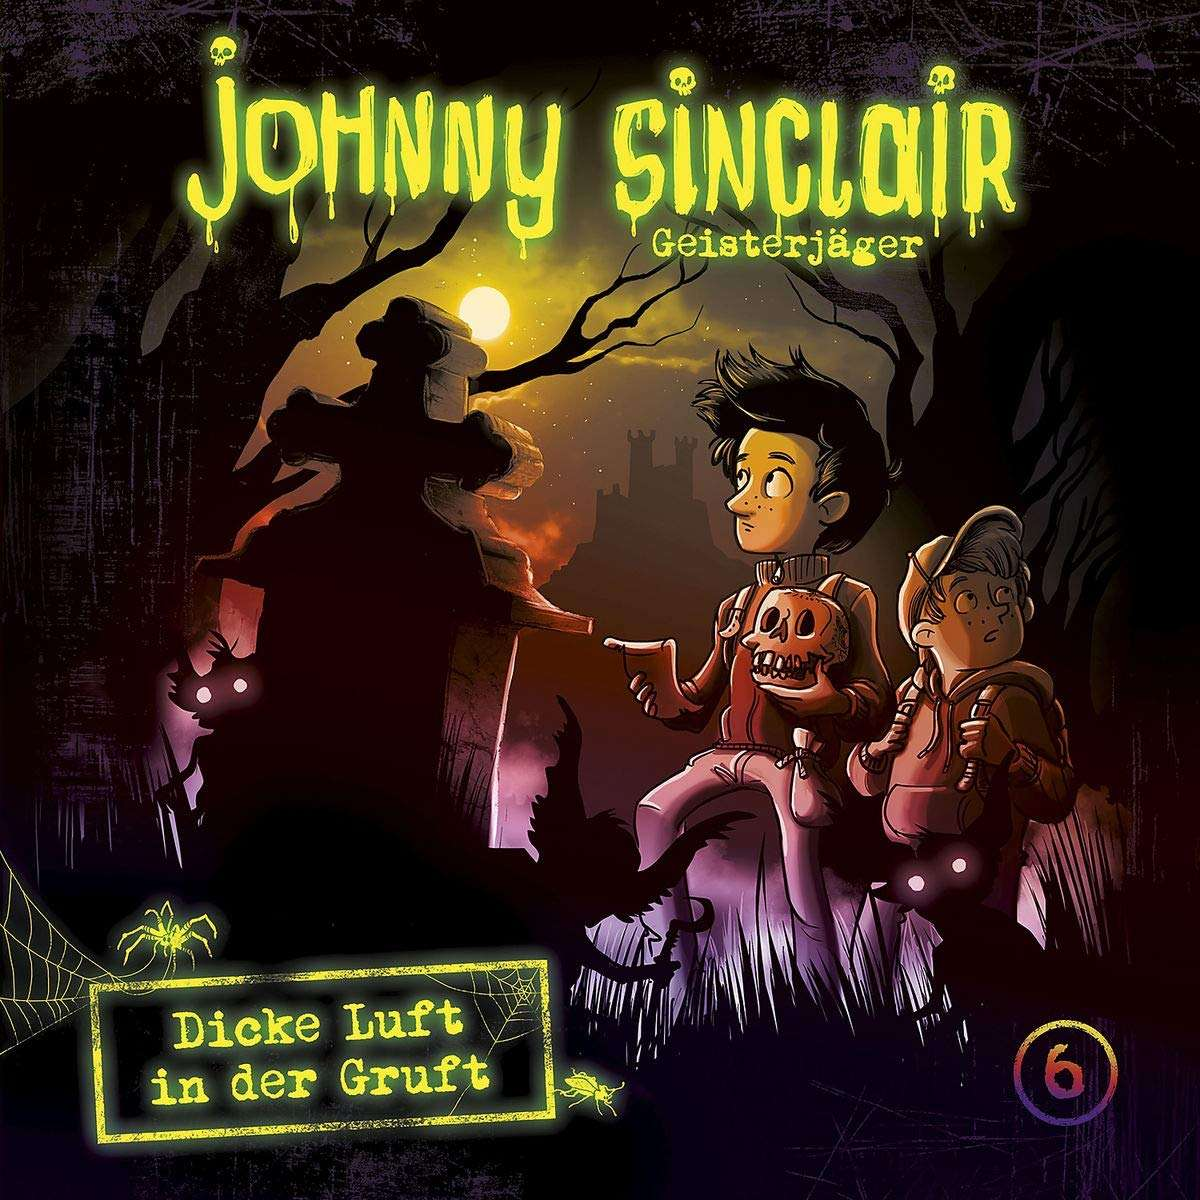 Bild:Johnny Sinclair - Dicke Luft in der Gruft